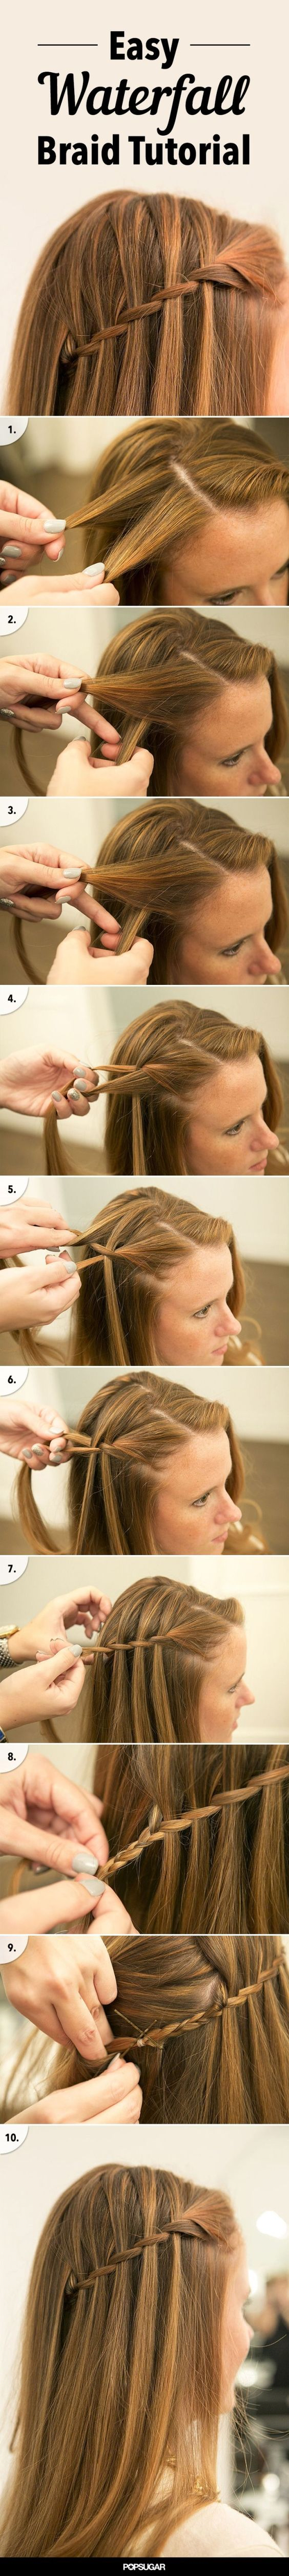 a waterfall braid tutorial: